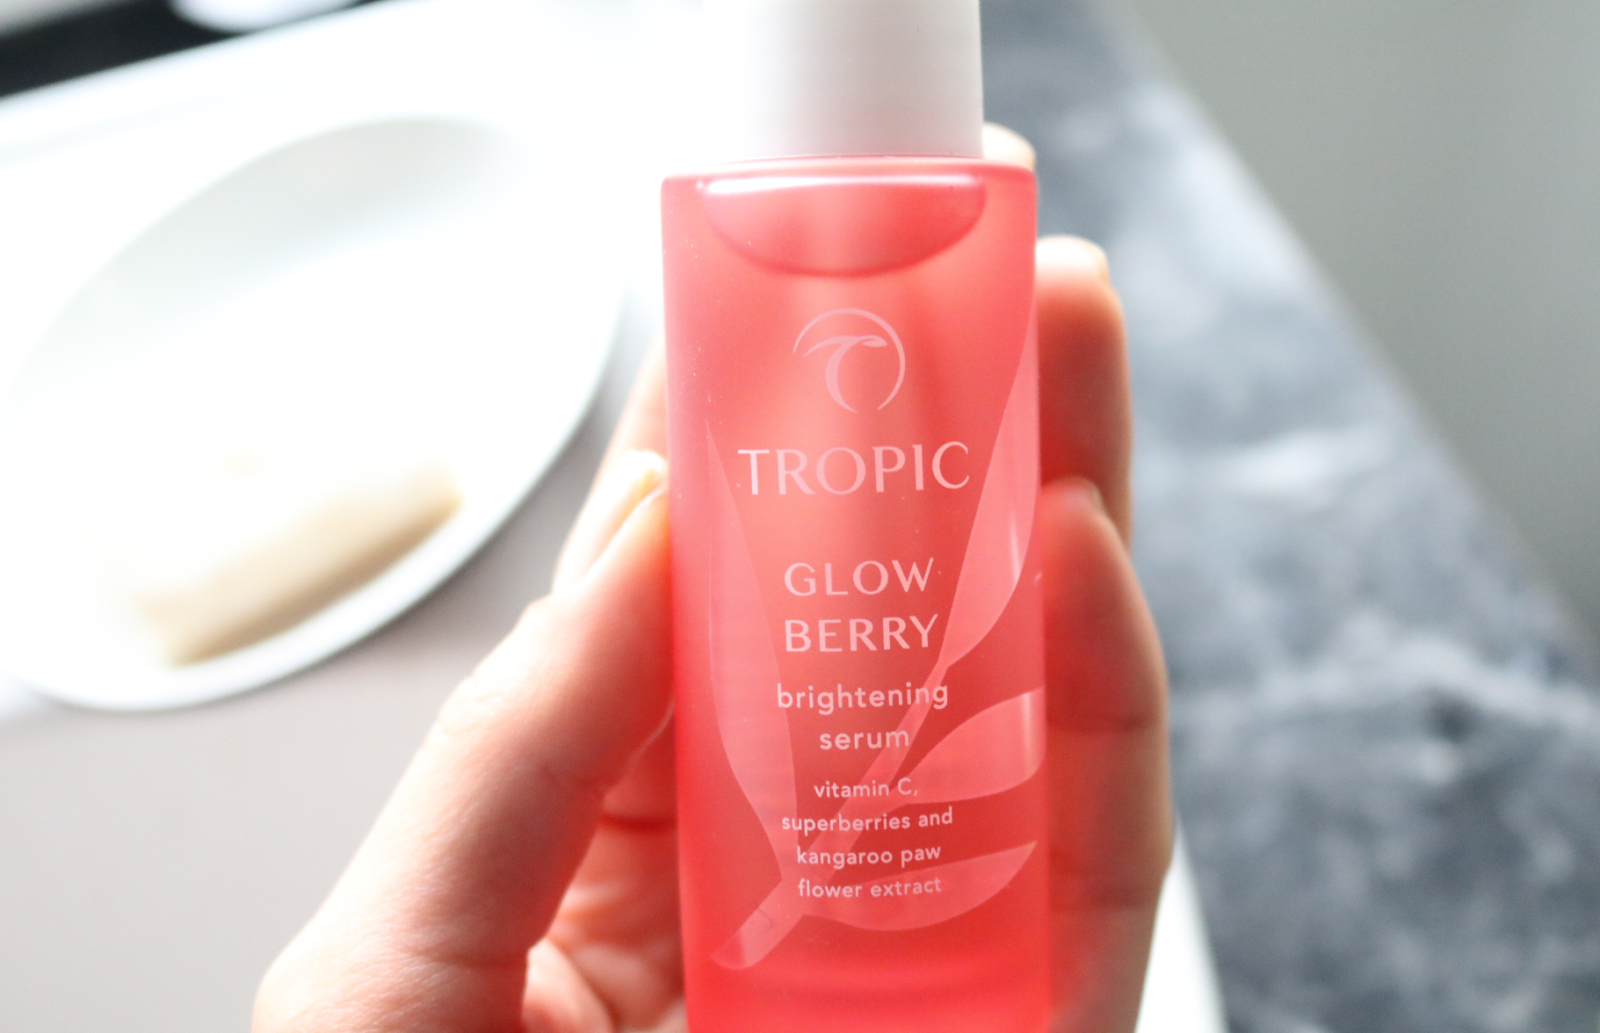 Tropic Glow Berry Brightening Serum review